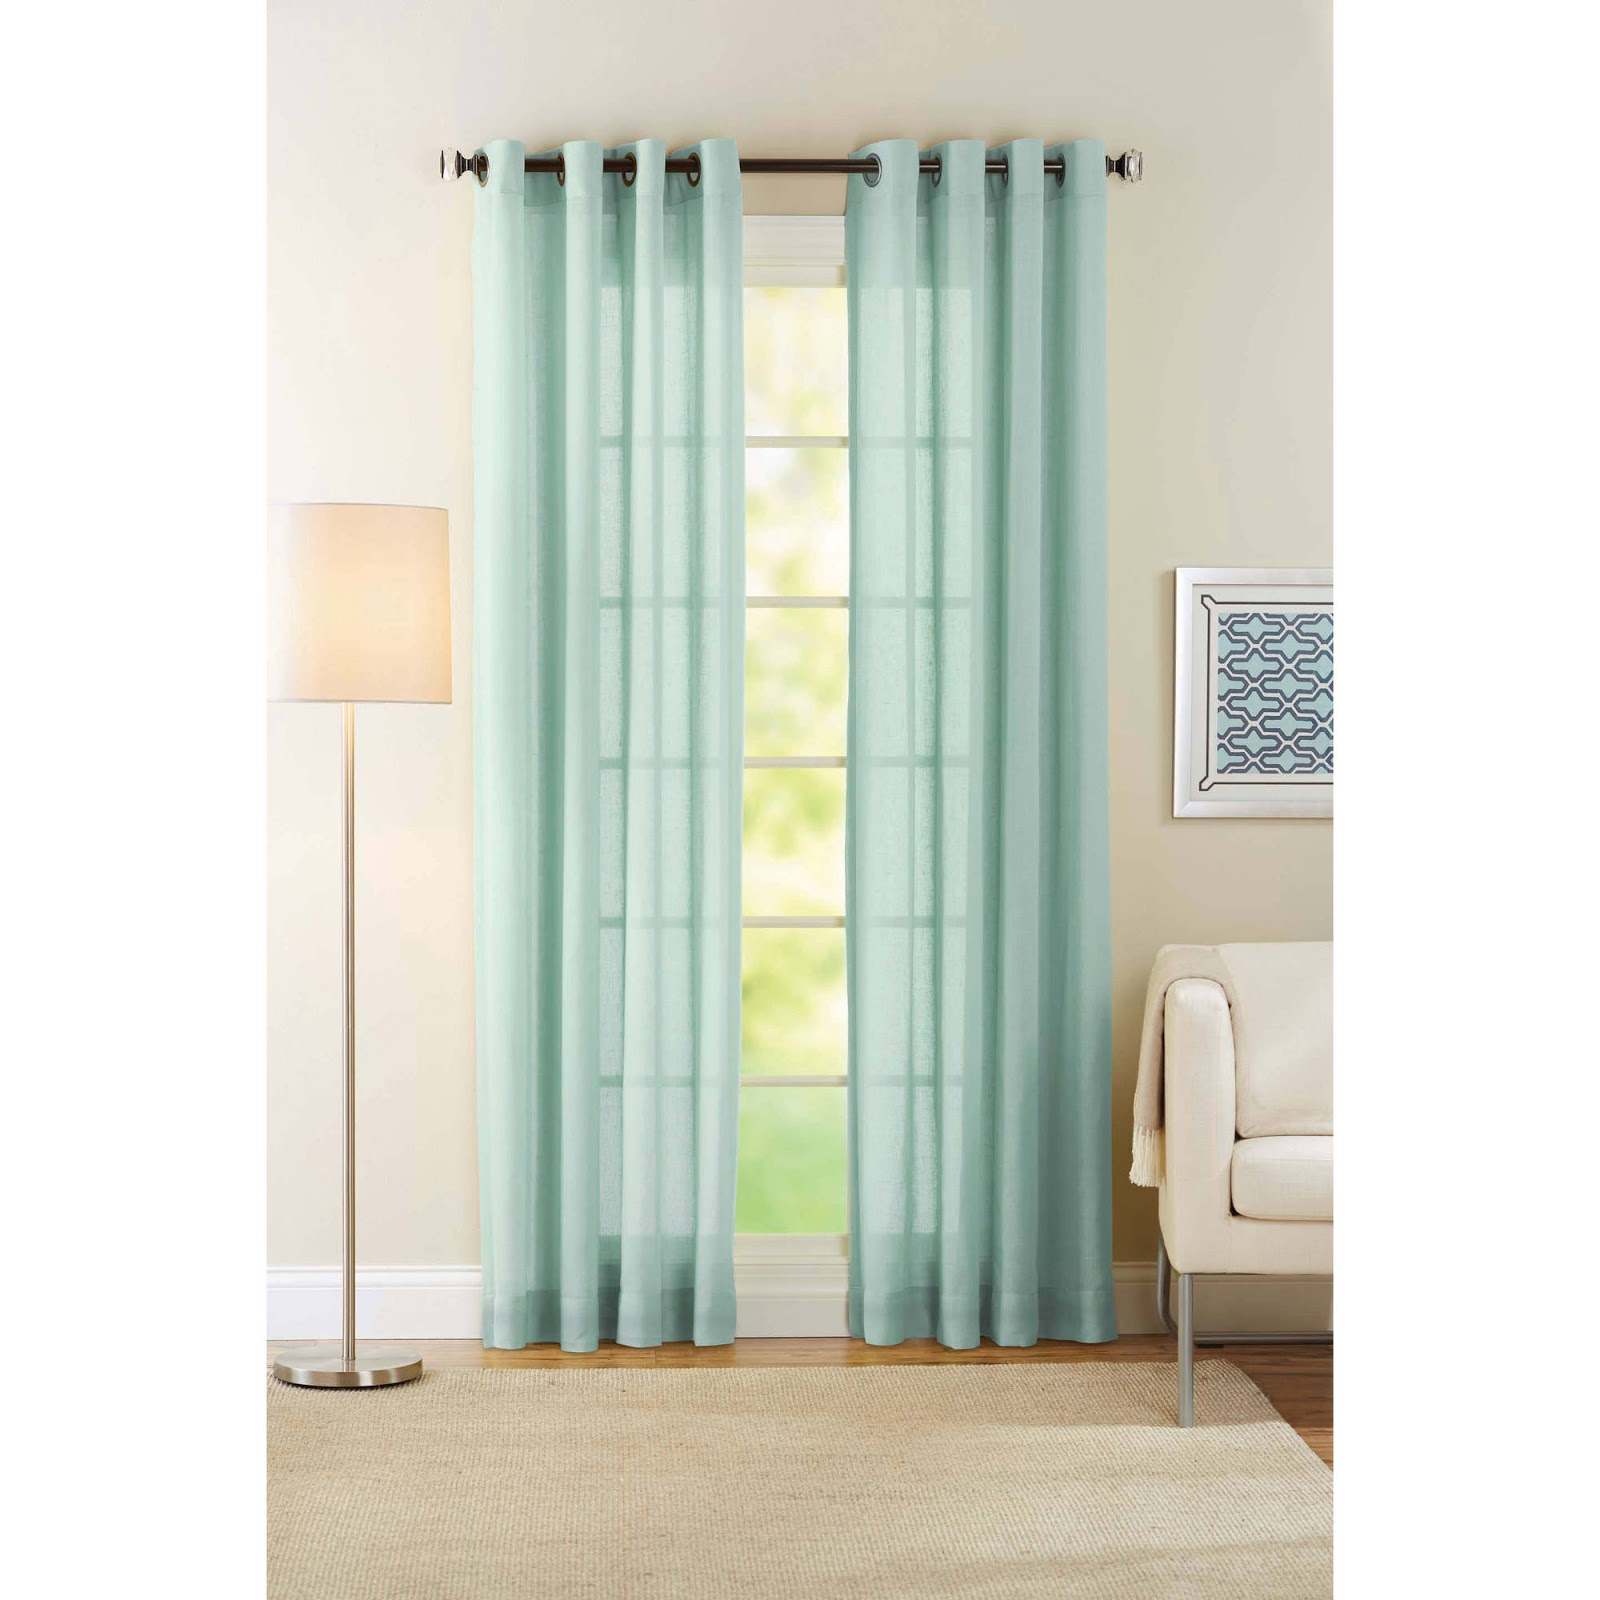 Changing Room Curtains Charcoal And White Eyelet Velvet